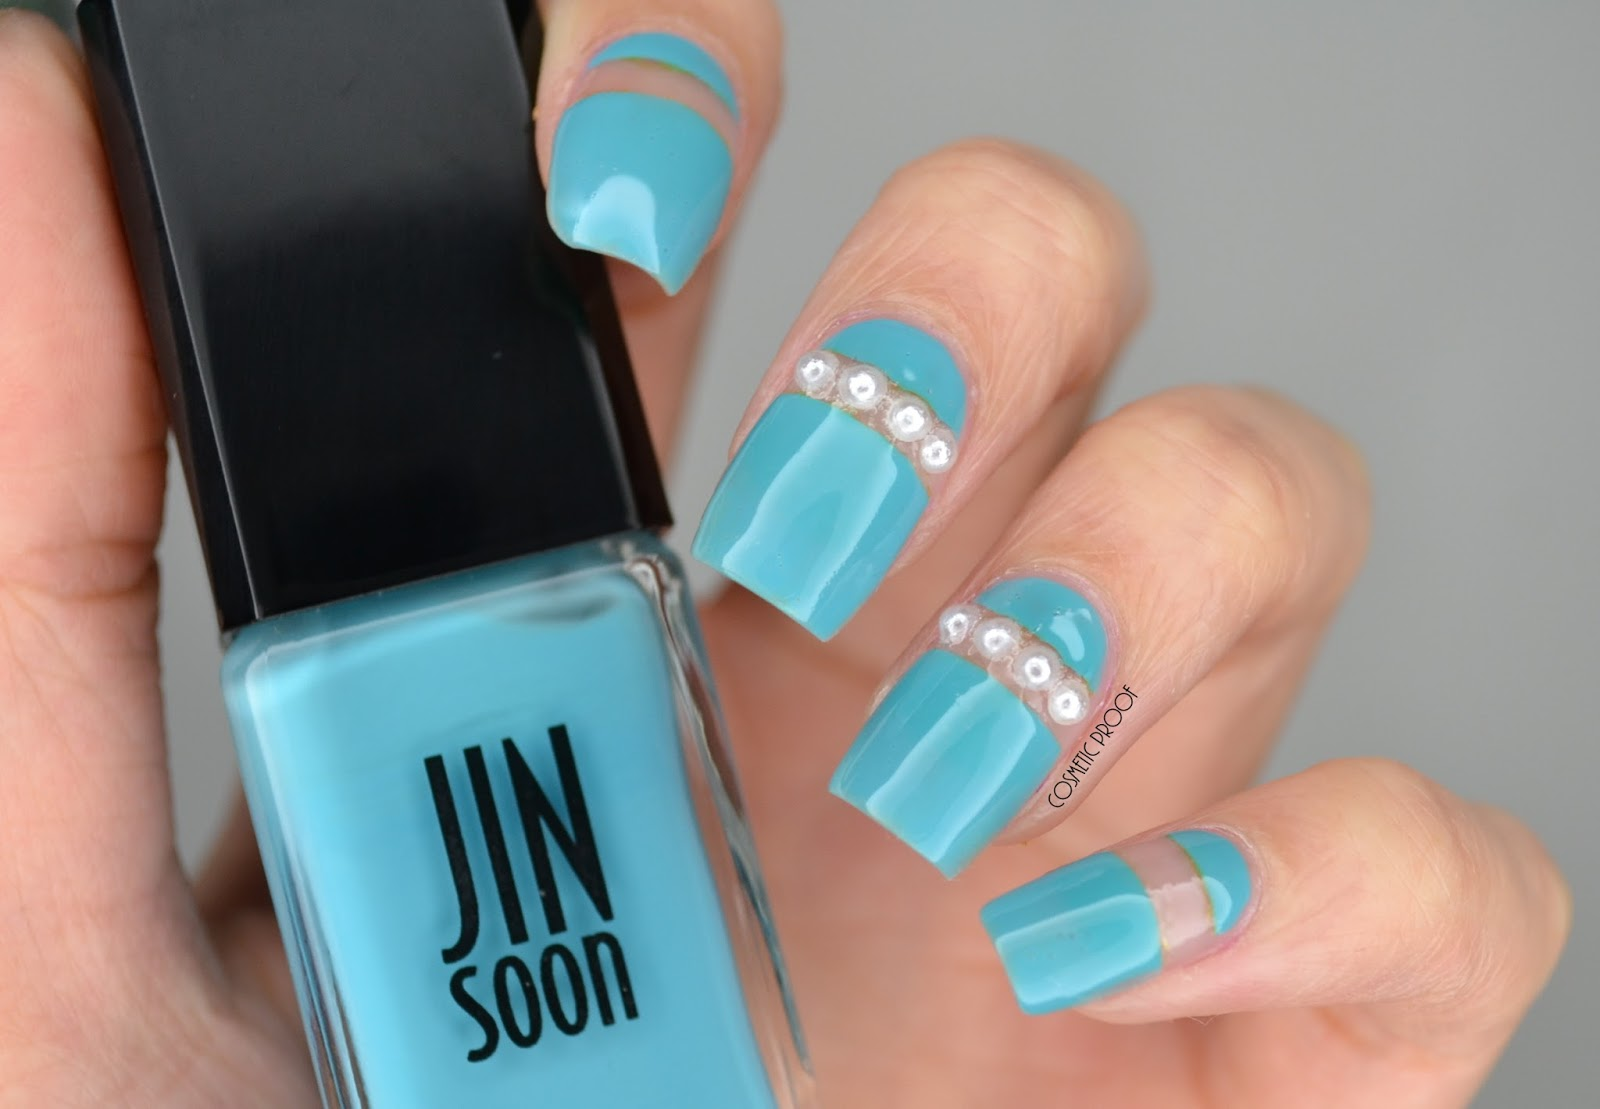 Nails pearls in negative space manimonday cosmetic proof jin soon poppy blue pearl nail art prinsesfo Images